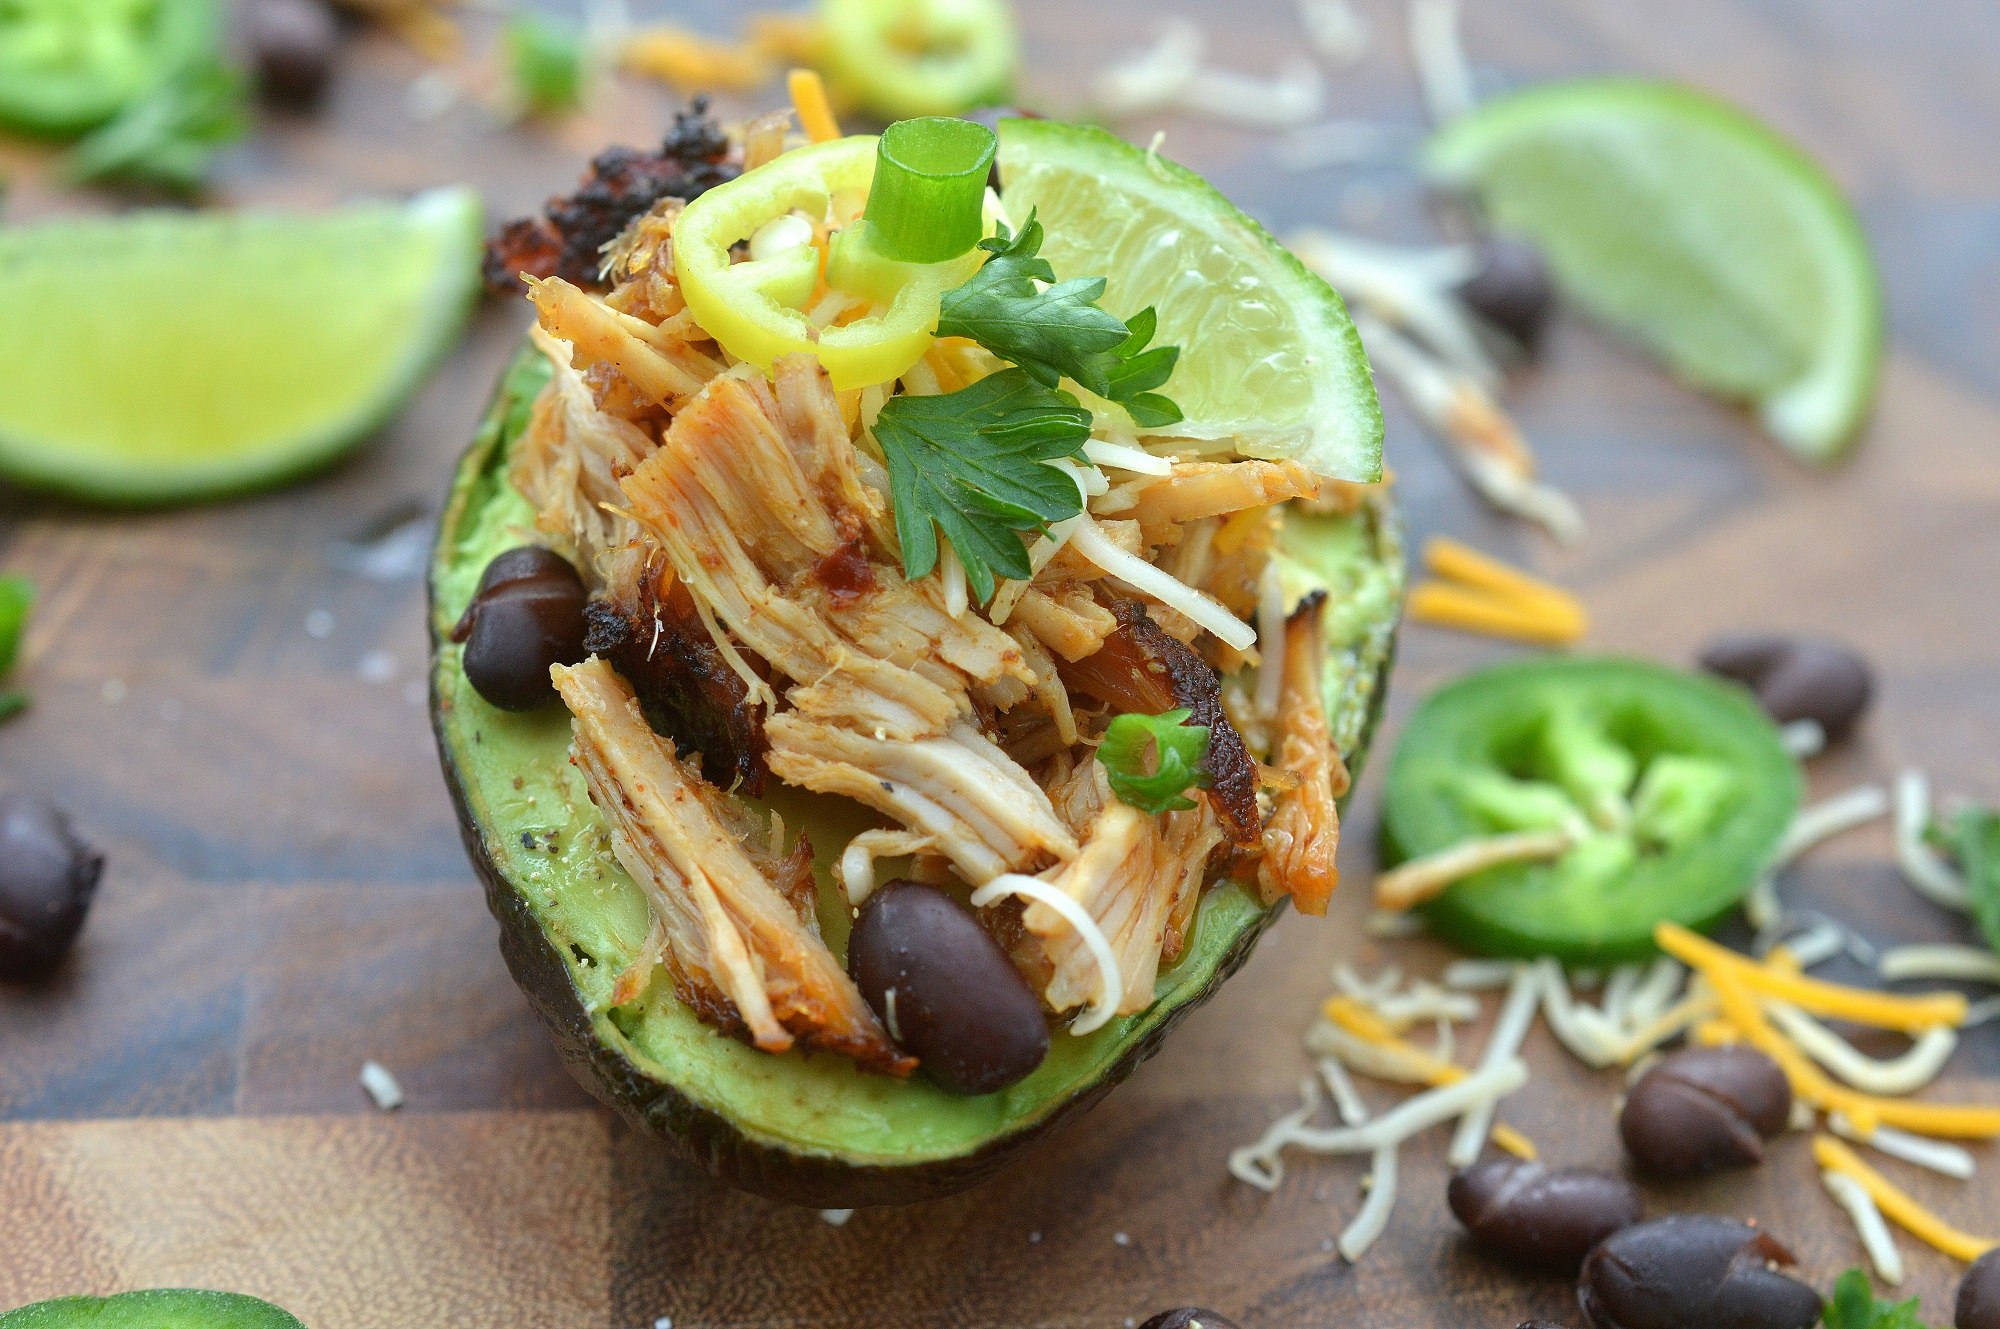 Loaded Pulled Pork Stuffed Avocados